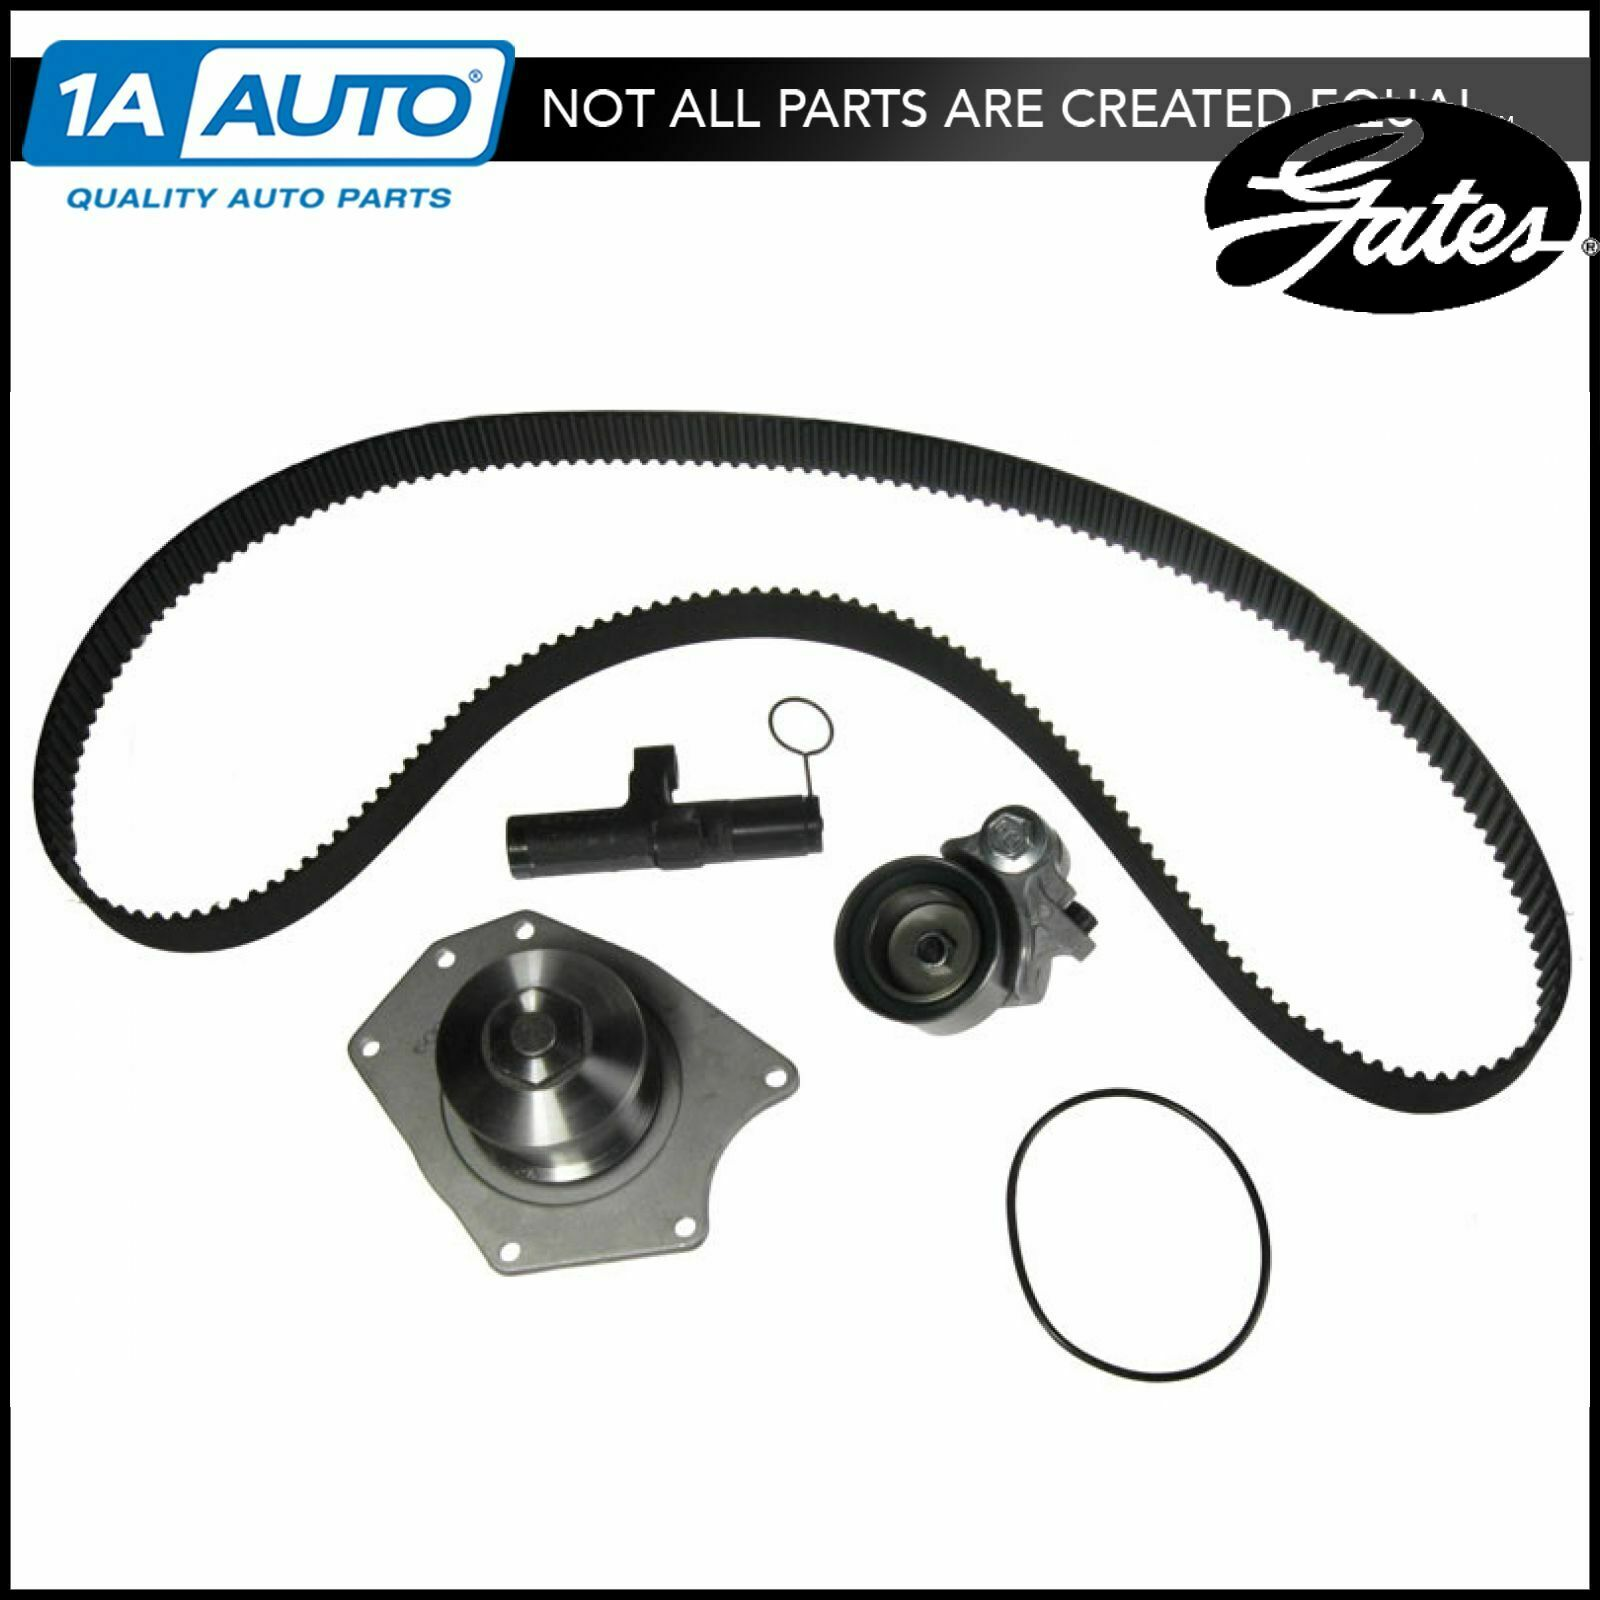 Timing Belt Kit W Water Pump Tensioner Tckwp295 Gates For Chrysler 1999 Isuzu Rodeo 1 Of 3only 2 Available